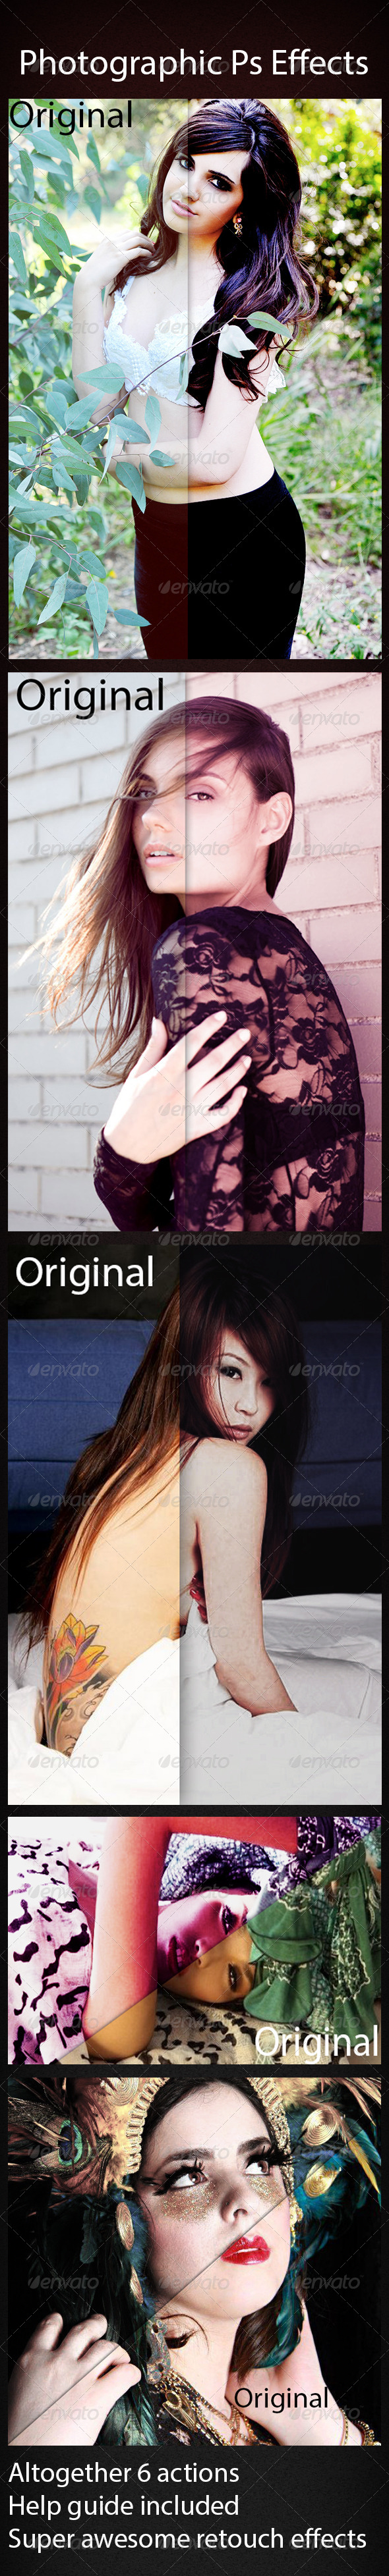 GraphicRiver Photographic Ps Effects 6263735